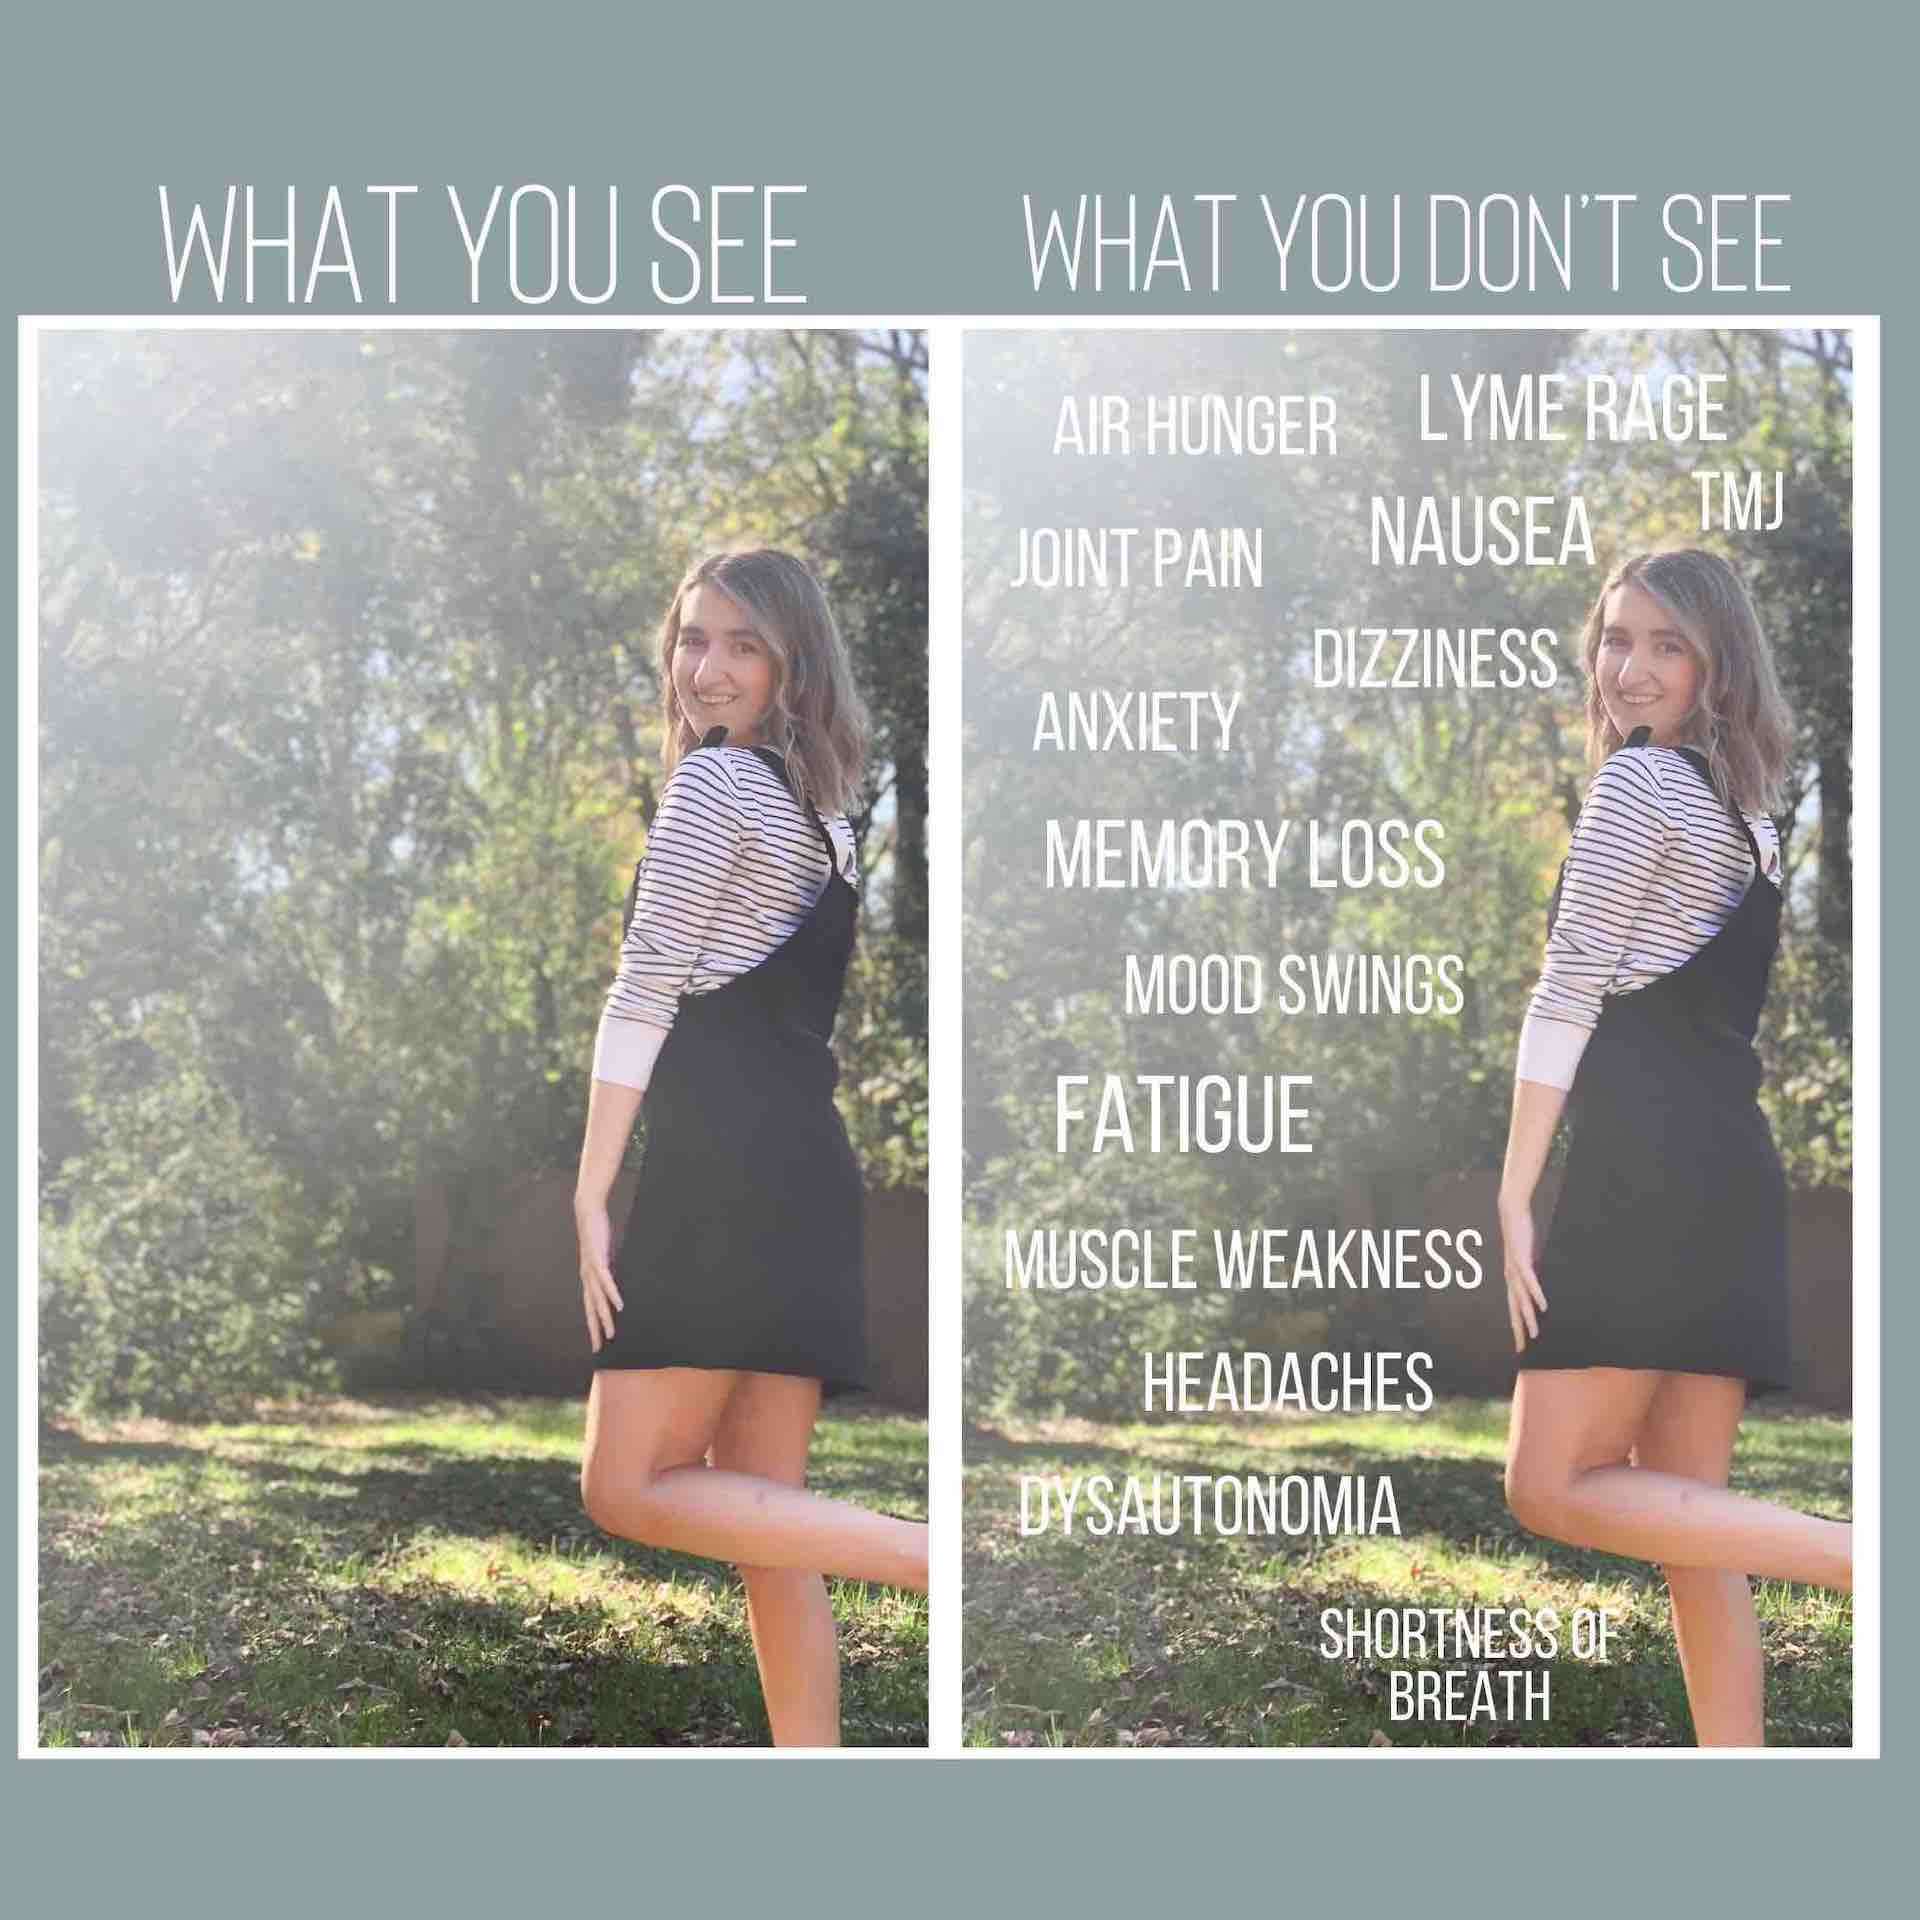 what you see vs what you don't see image - side by side photos of girl, one with symptoms listed overtop of photo